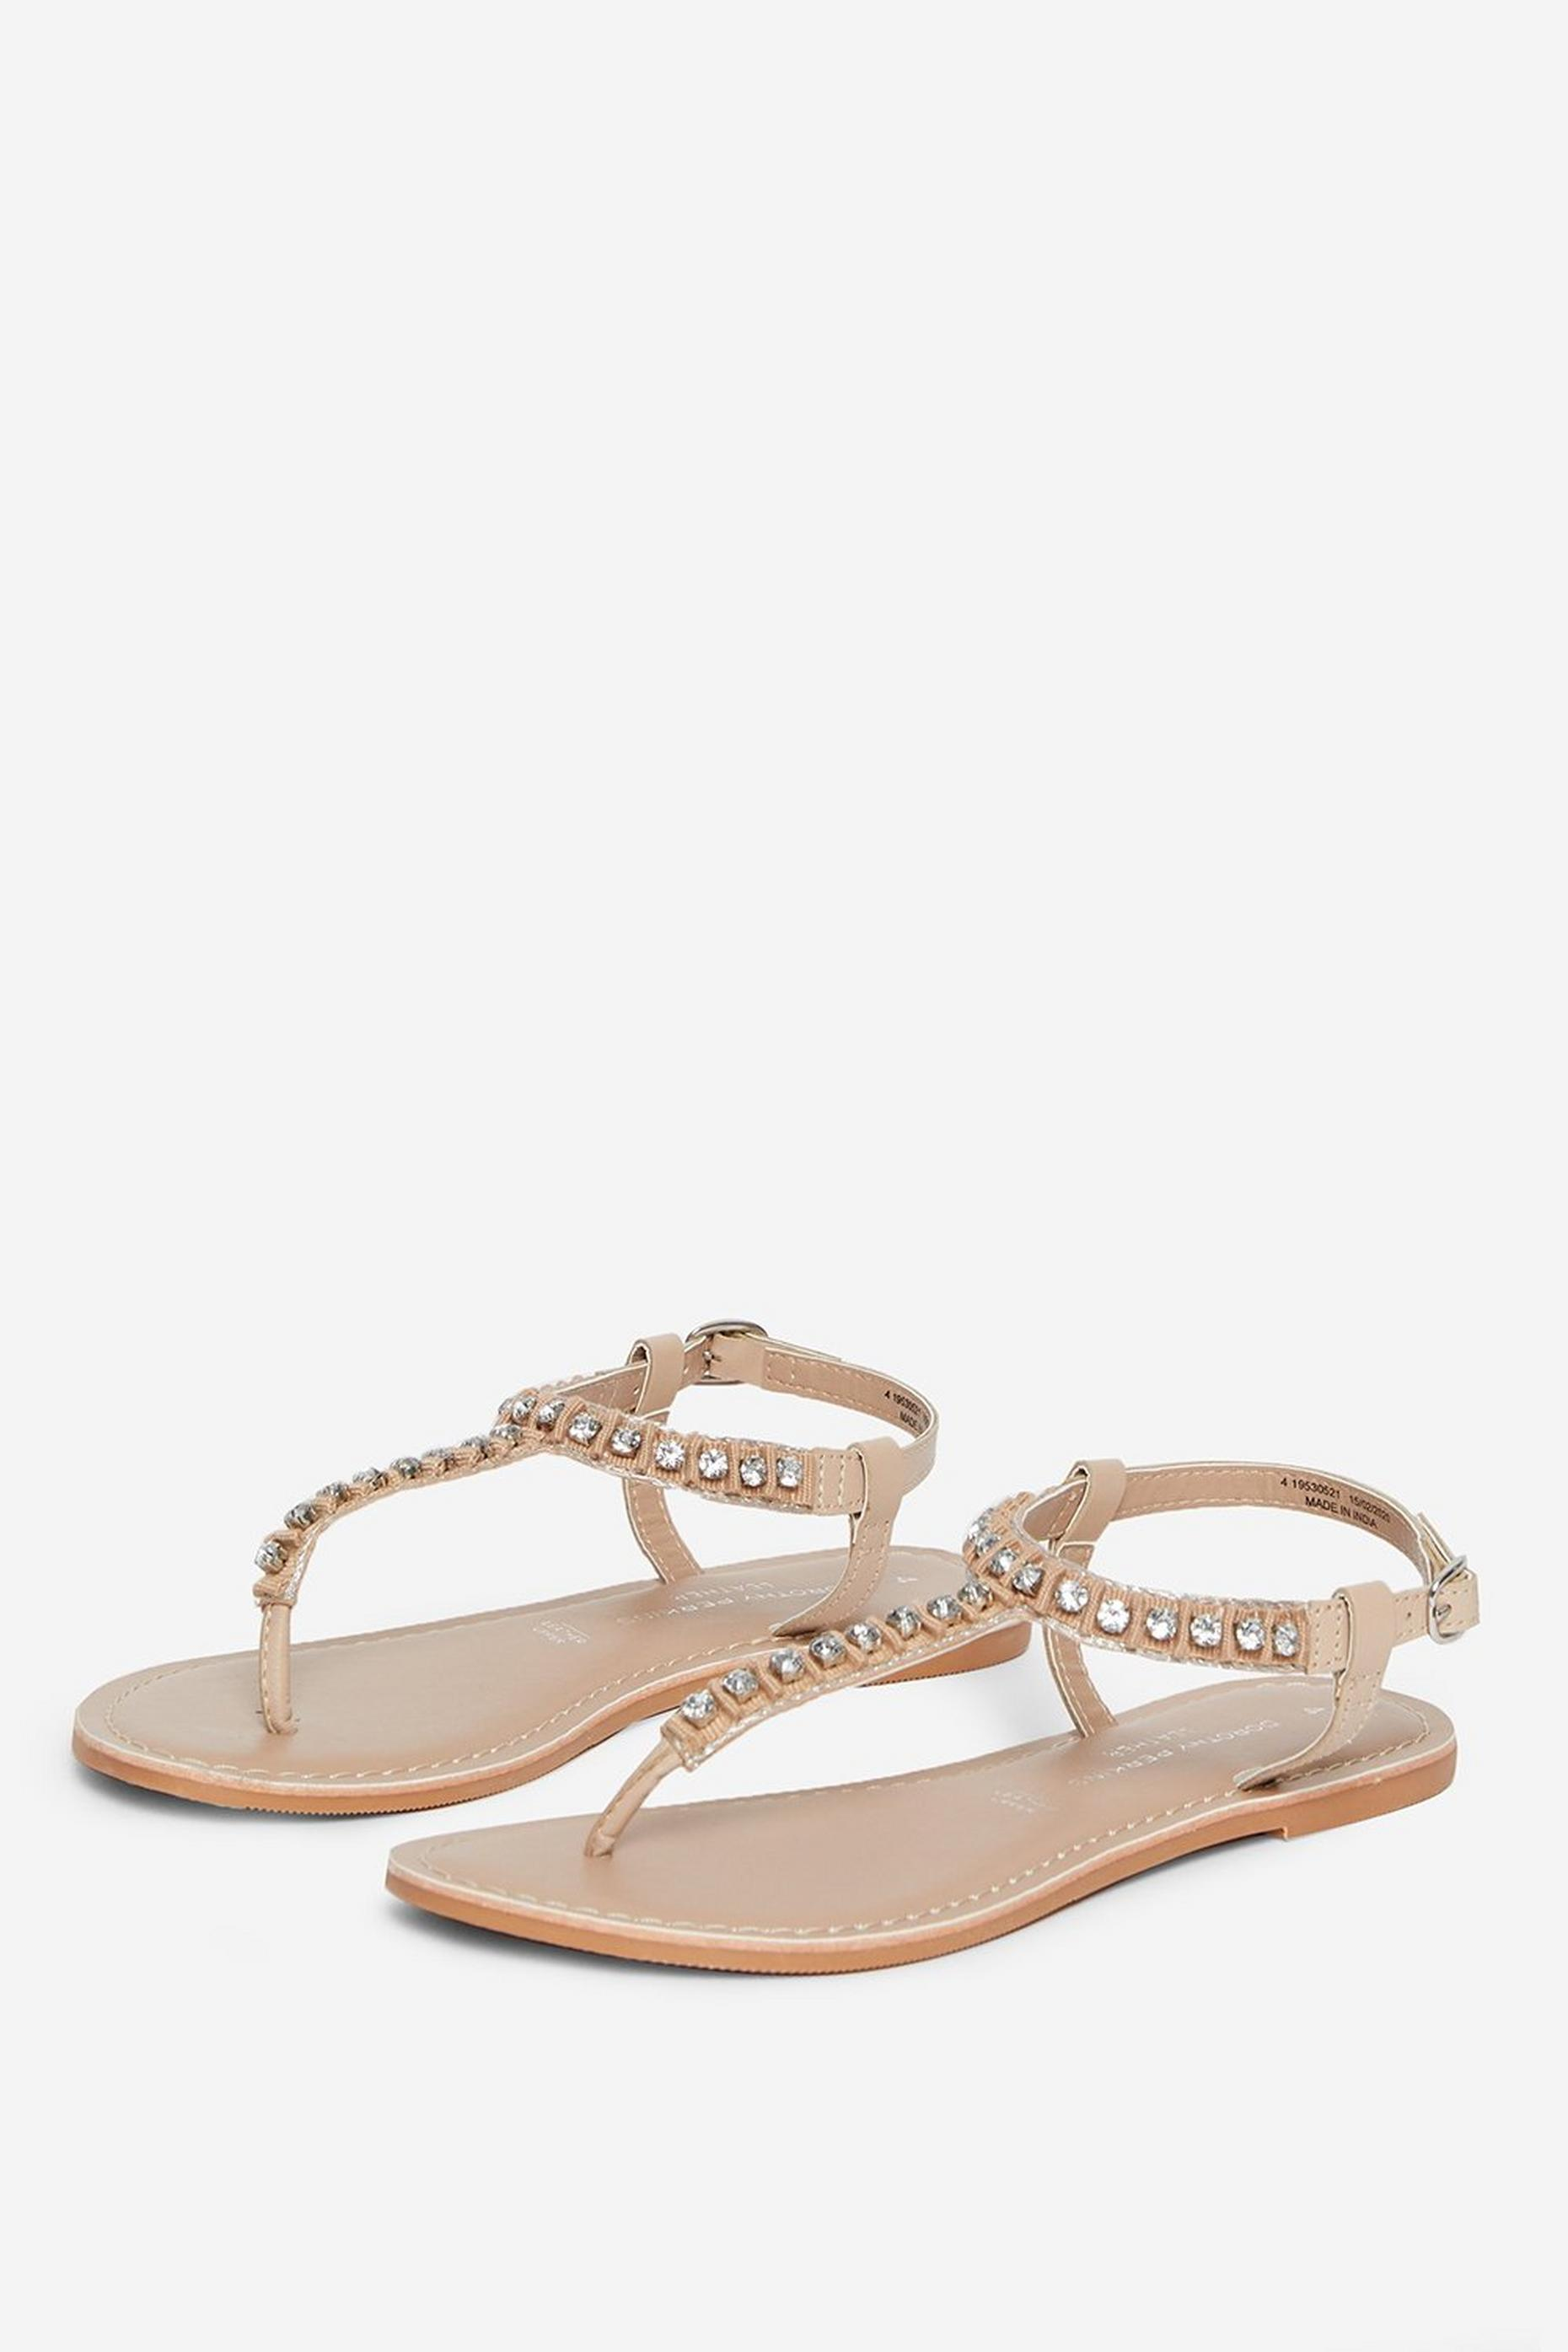 Showcase Beige Jupiter Sandals